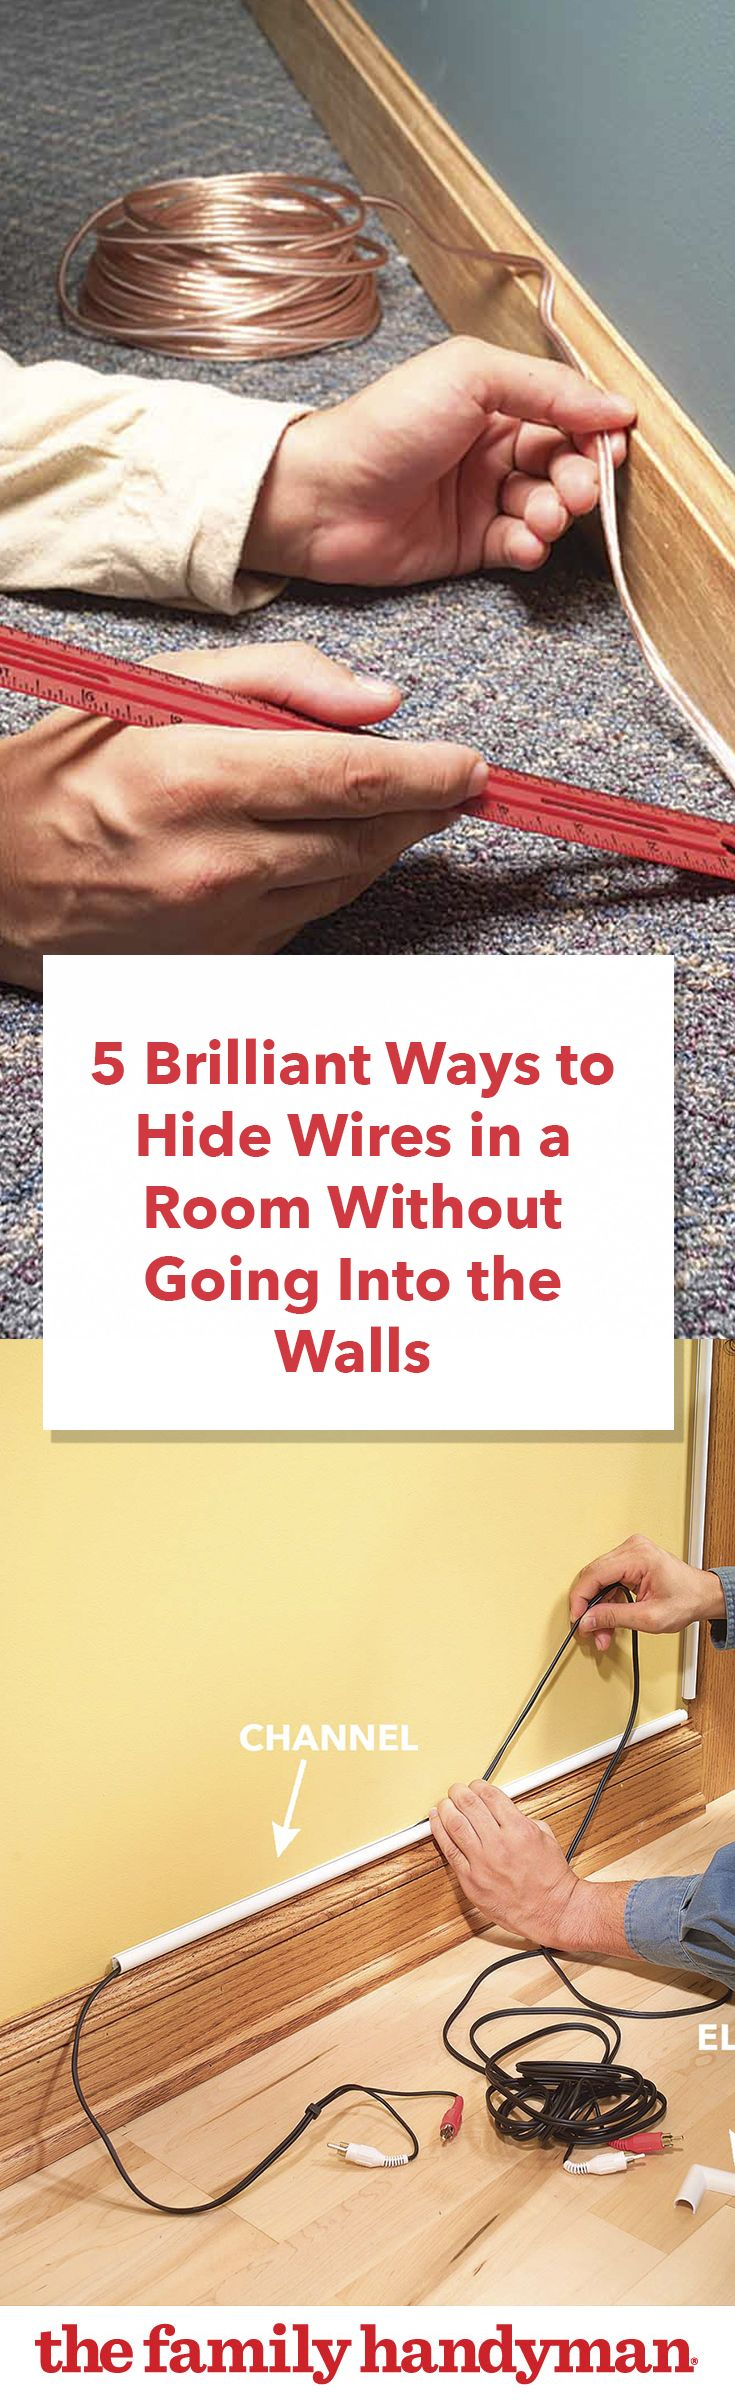 5 Brilliant Ways To Hide Wires In A Room Without Going Into The Wiring On Pinterest Electrical Home And Walls 2018 Repair